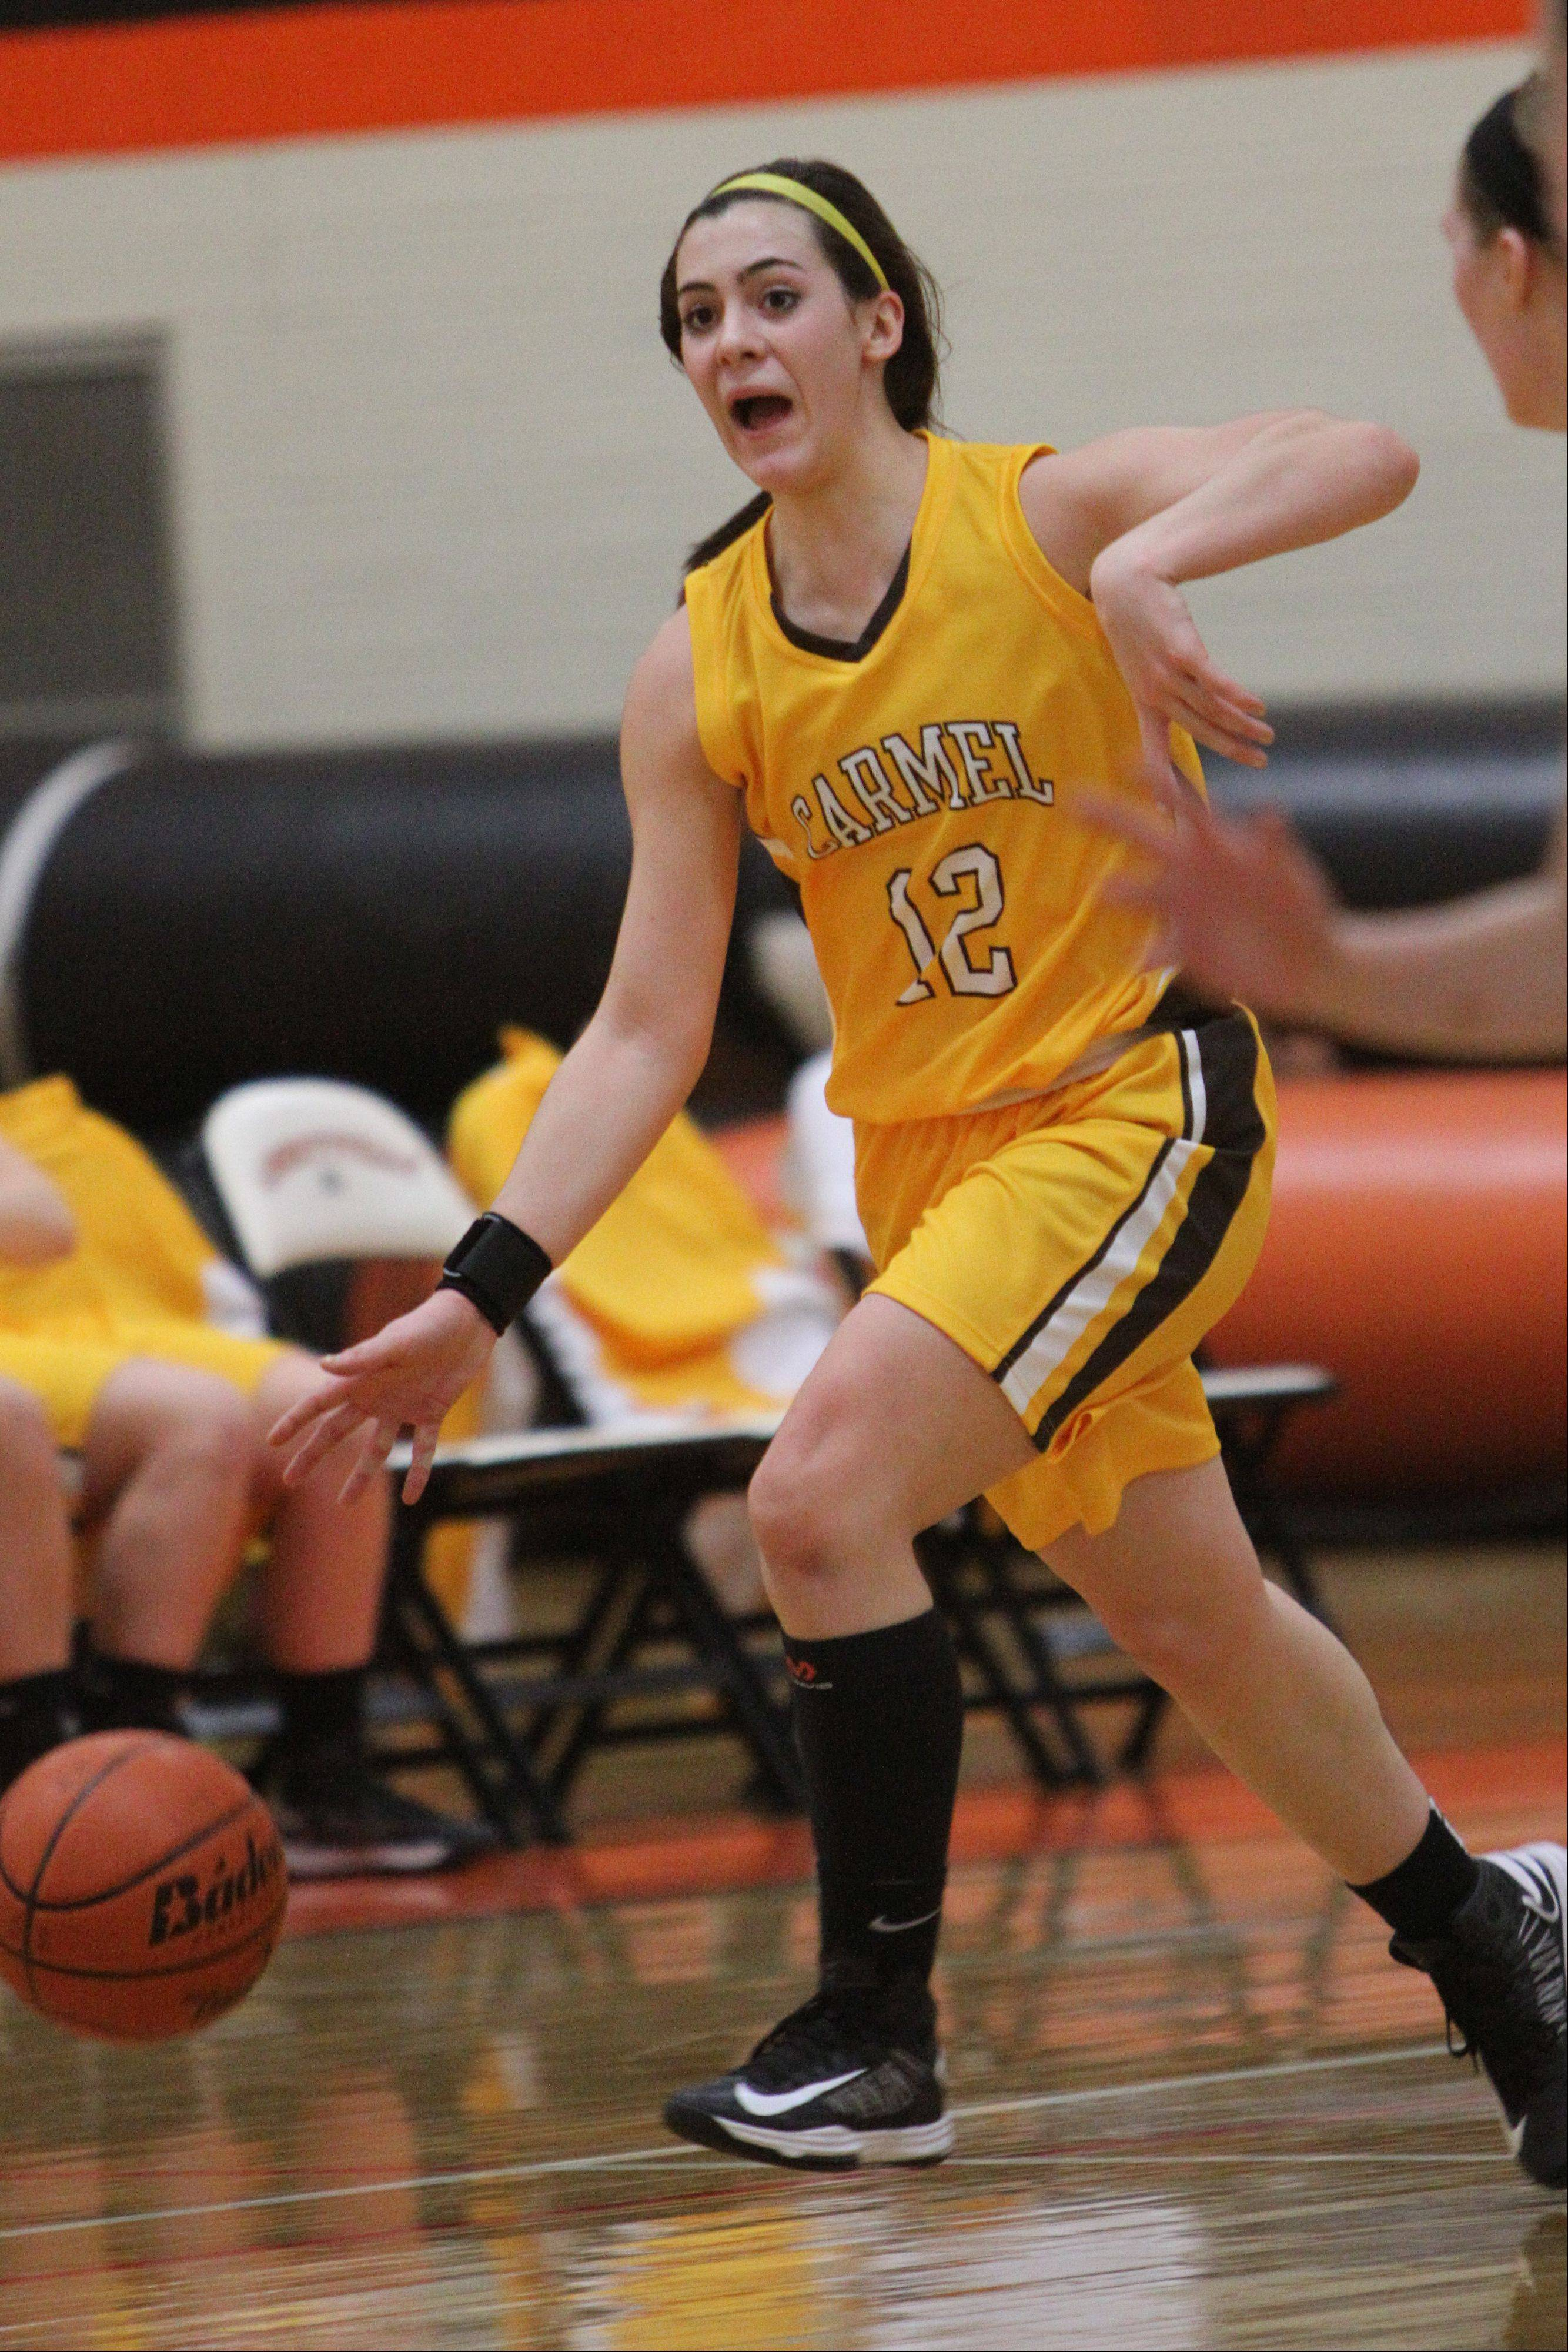 Images from the Carmel at Libertyville girls basketball game Wednesday, Jan. 23.